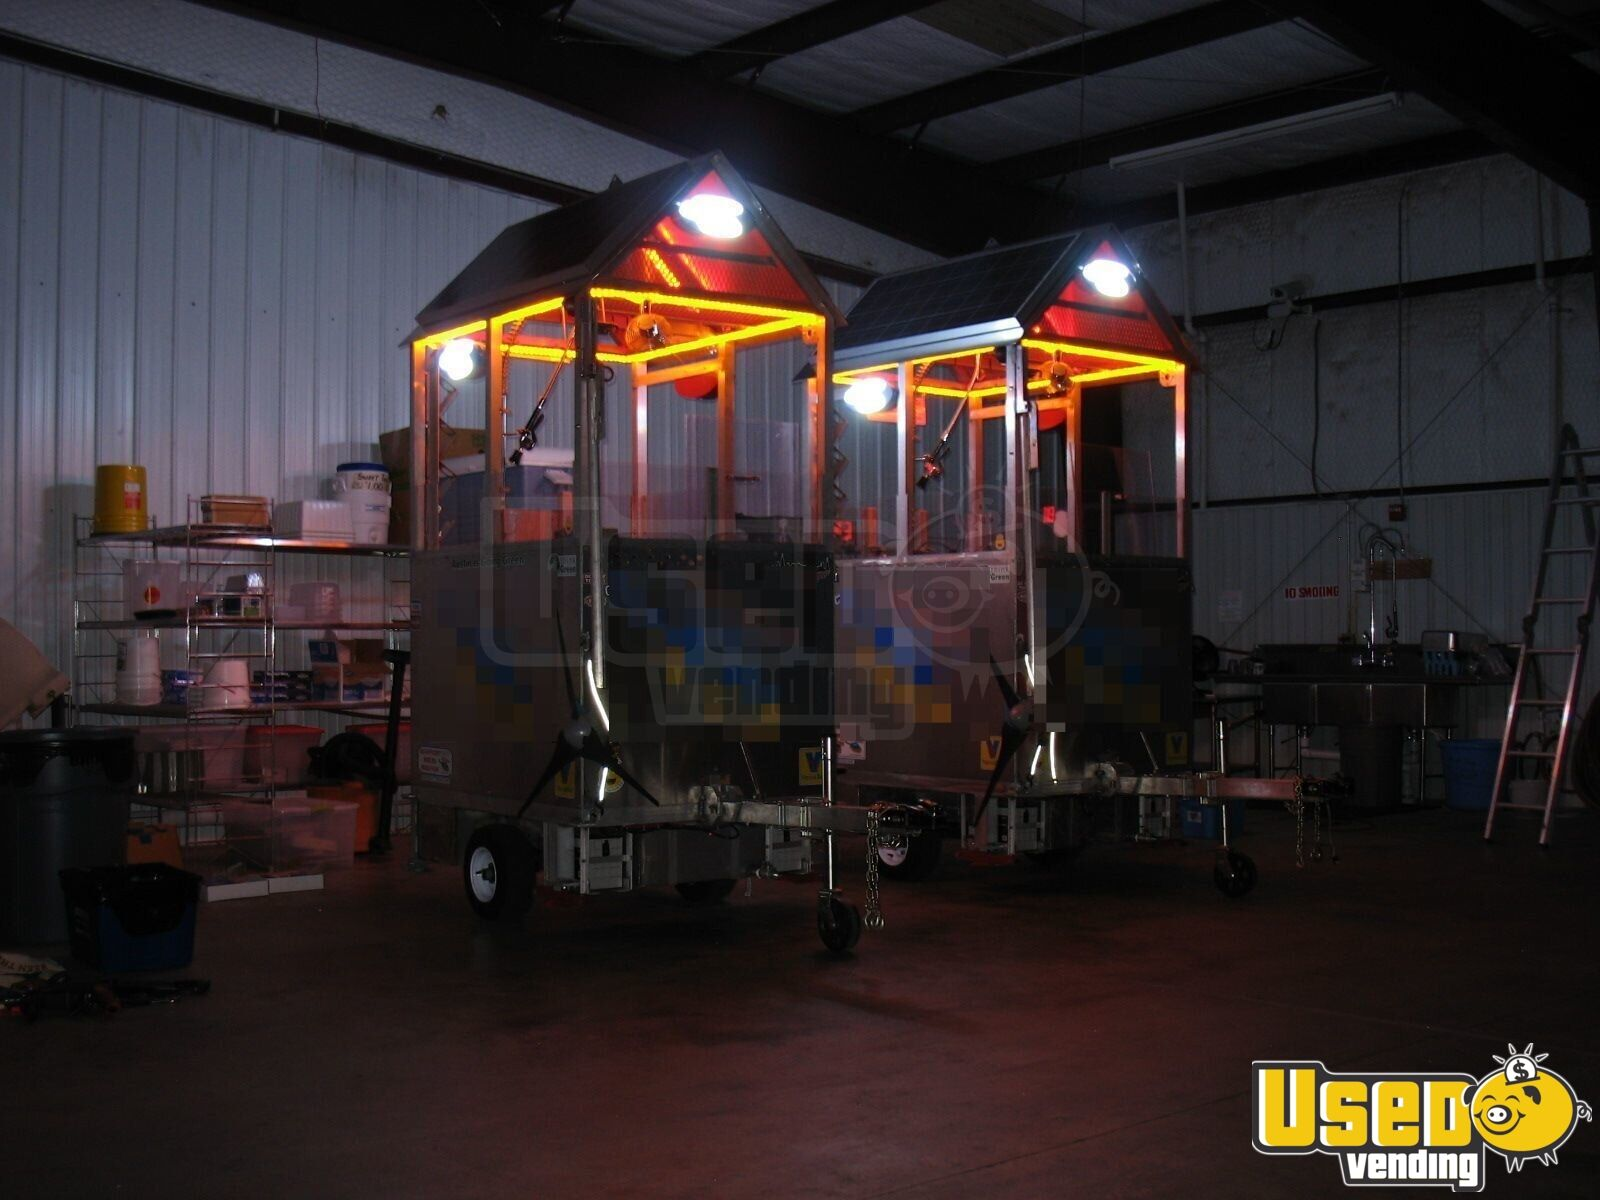 2009 Top Gun Top Dog Self Sufficient Mobile, Model Slt Food Cart 40 Texas for Sale - 40